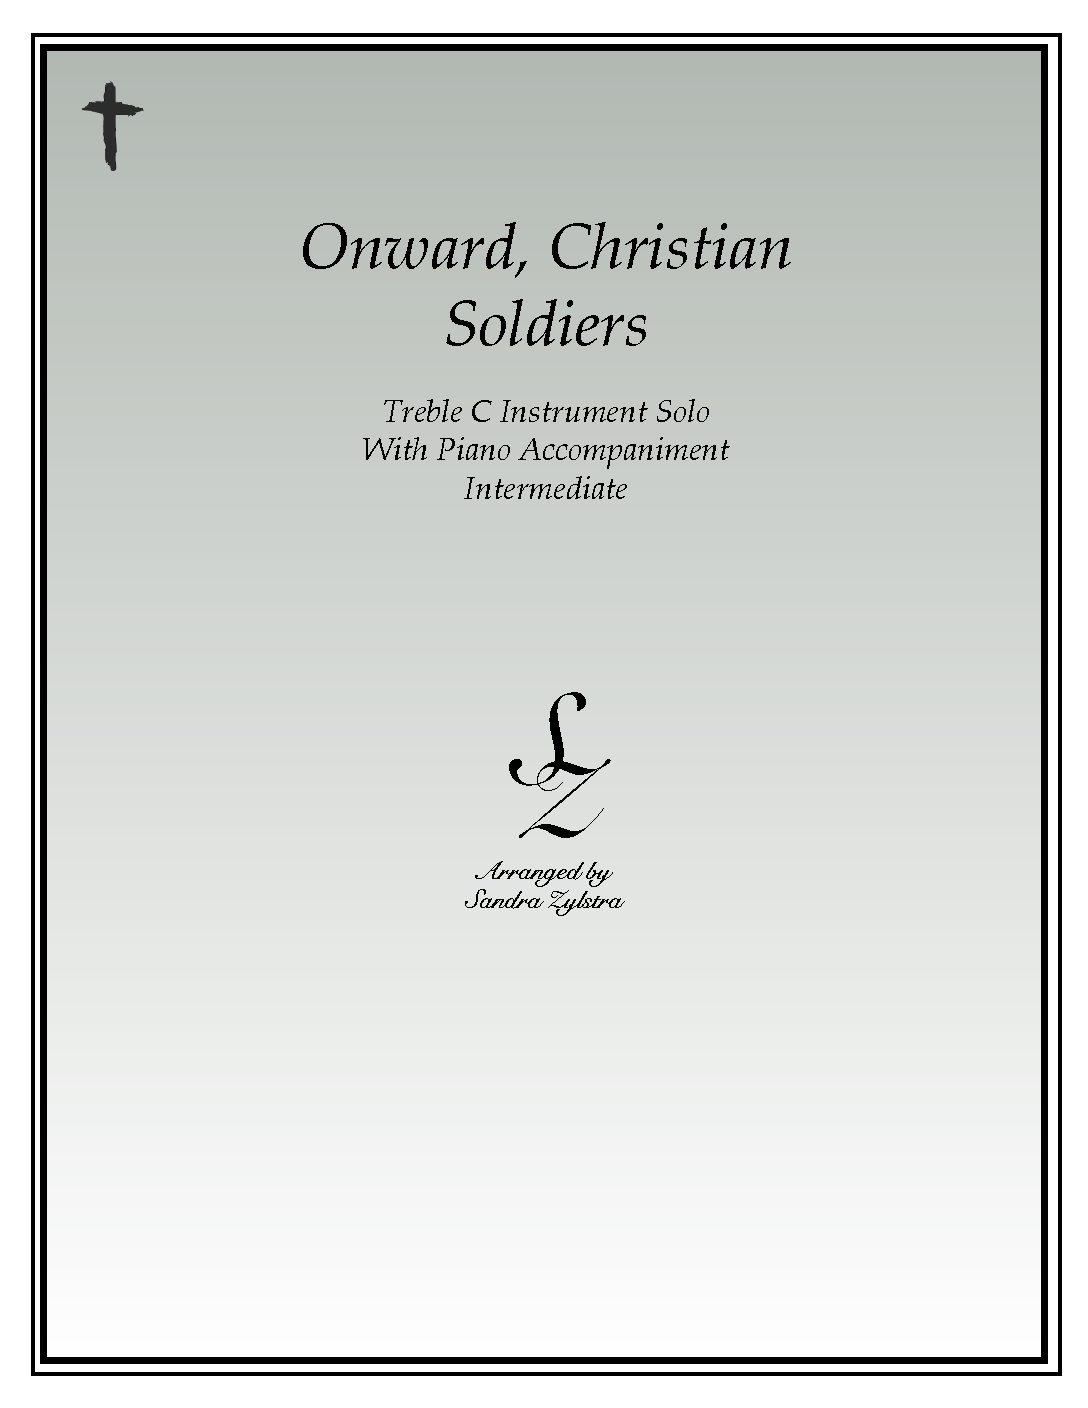 Onward, Christian Soldiers -Treble C Instrument Solo